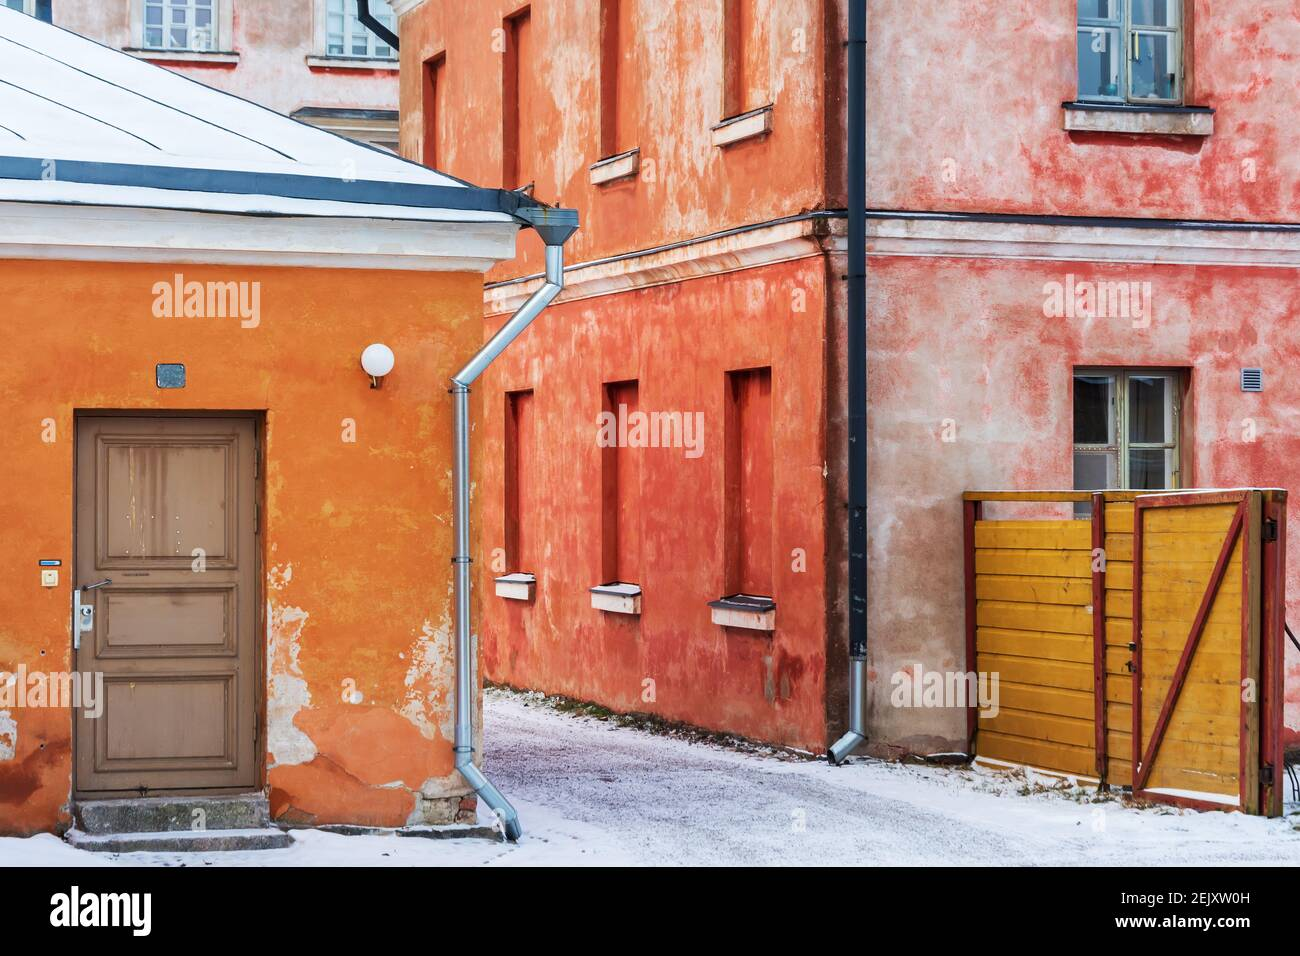 pink-and-orange-colour-buildings-on-suomenlinna-fortress-island-in-helsinki-finland-2EJXW0H.jpg